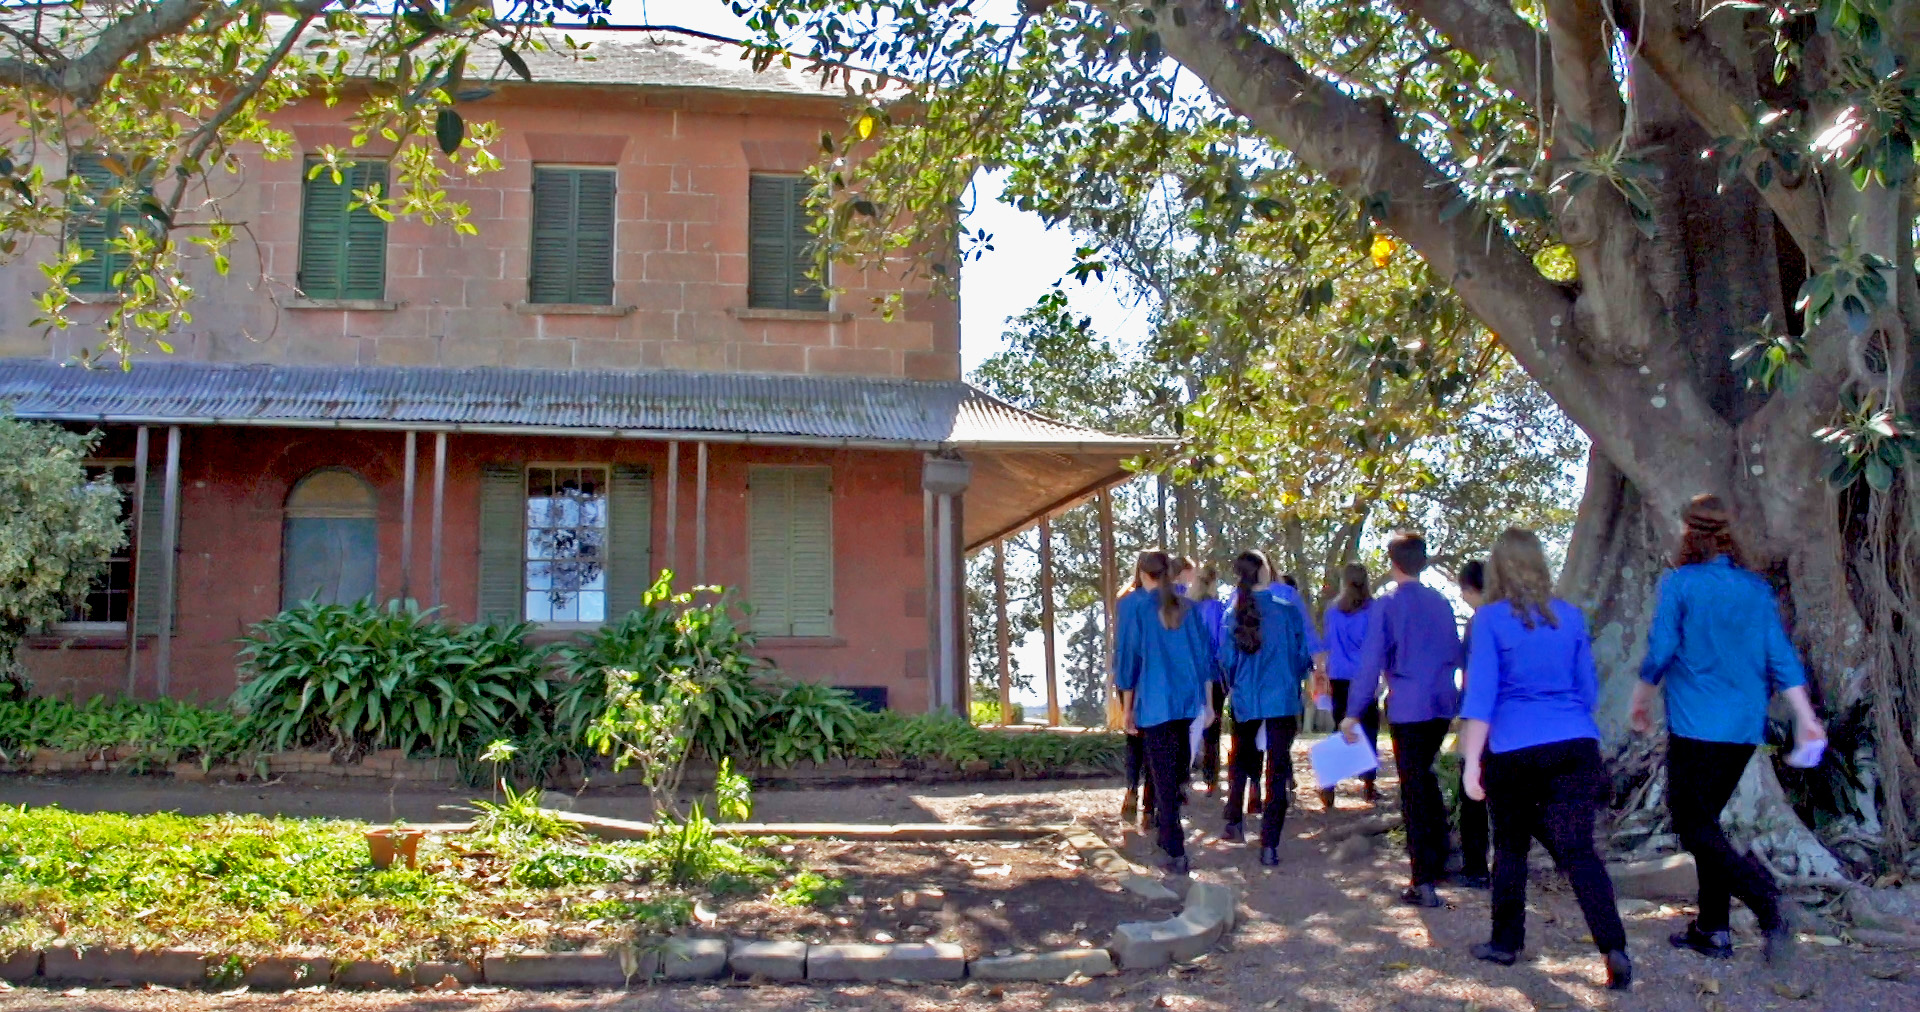 Members of Sydney Children's Choir on a tour of Rouse Hill Estate.